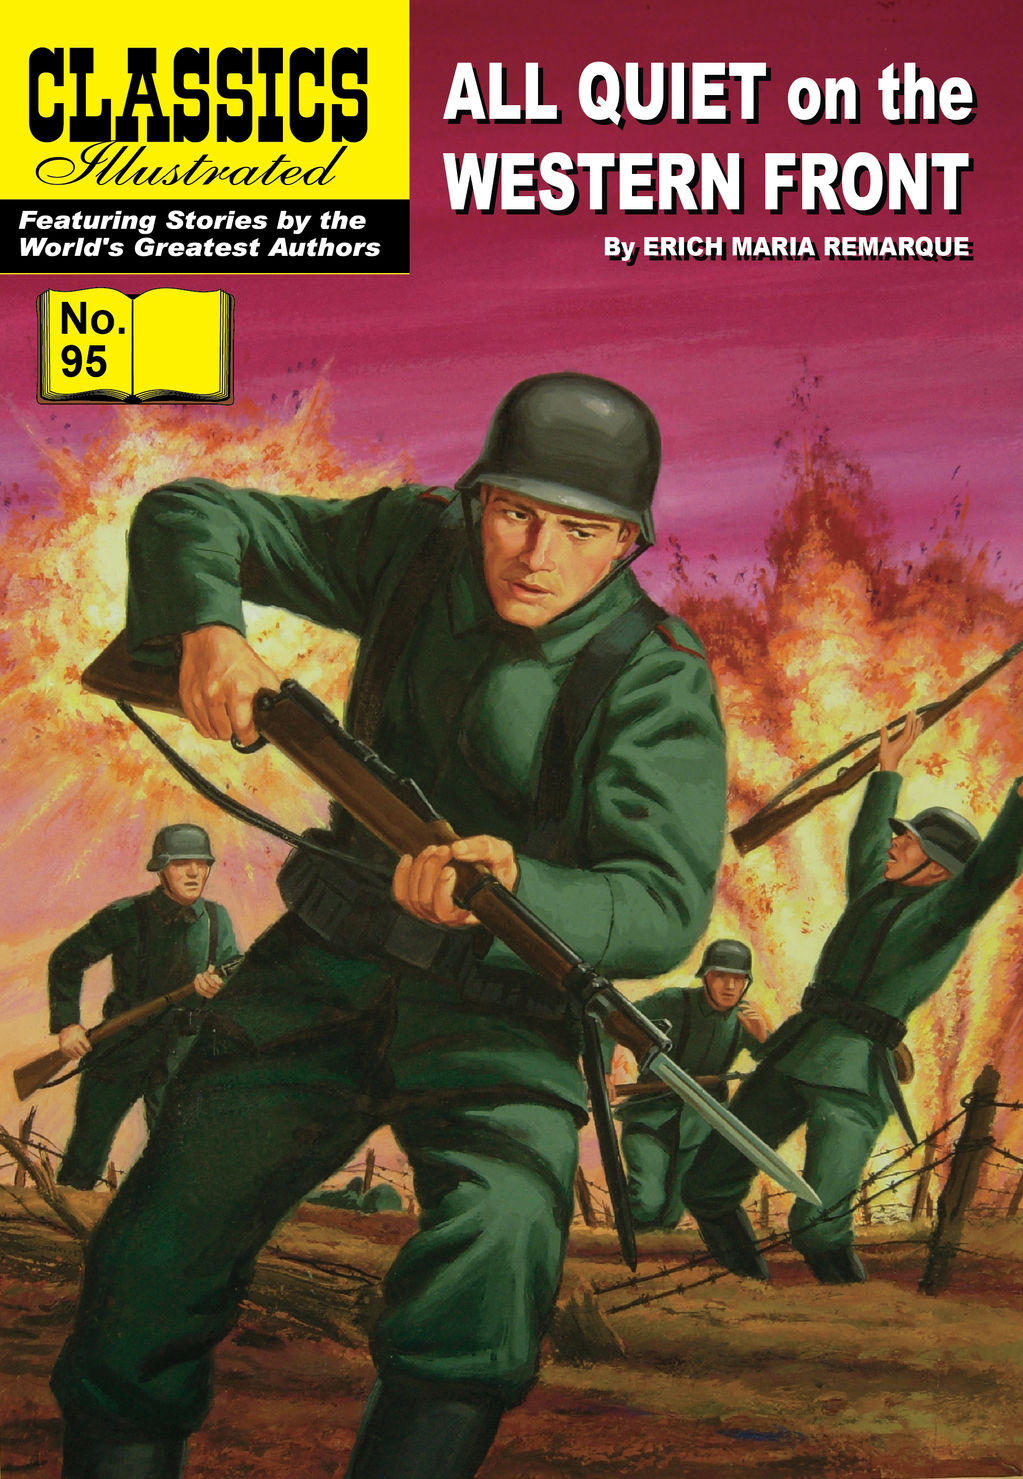 All Quiet on the Western Front - Classics Illustrated #95